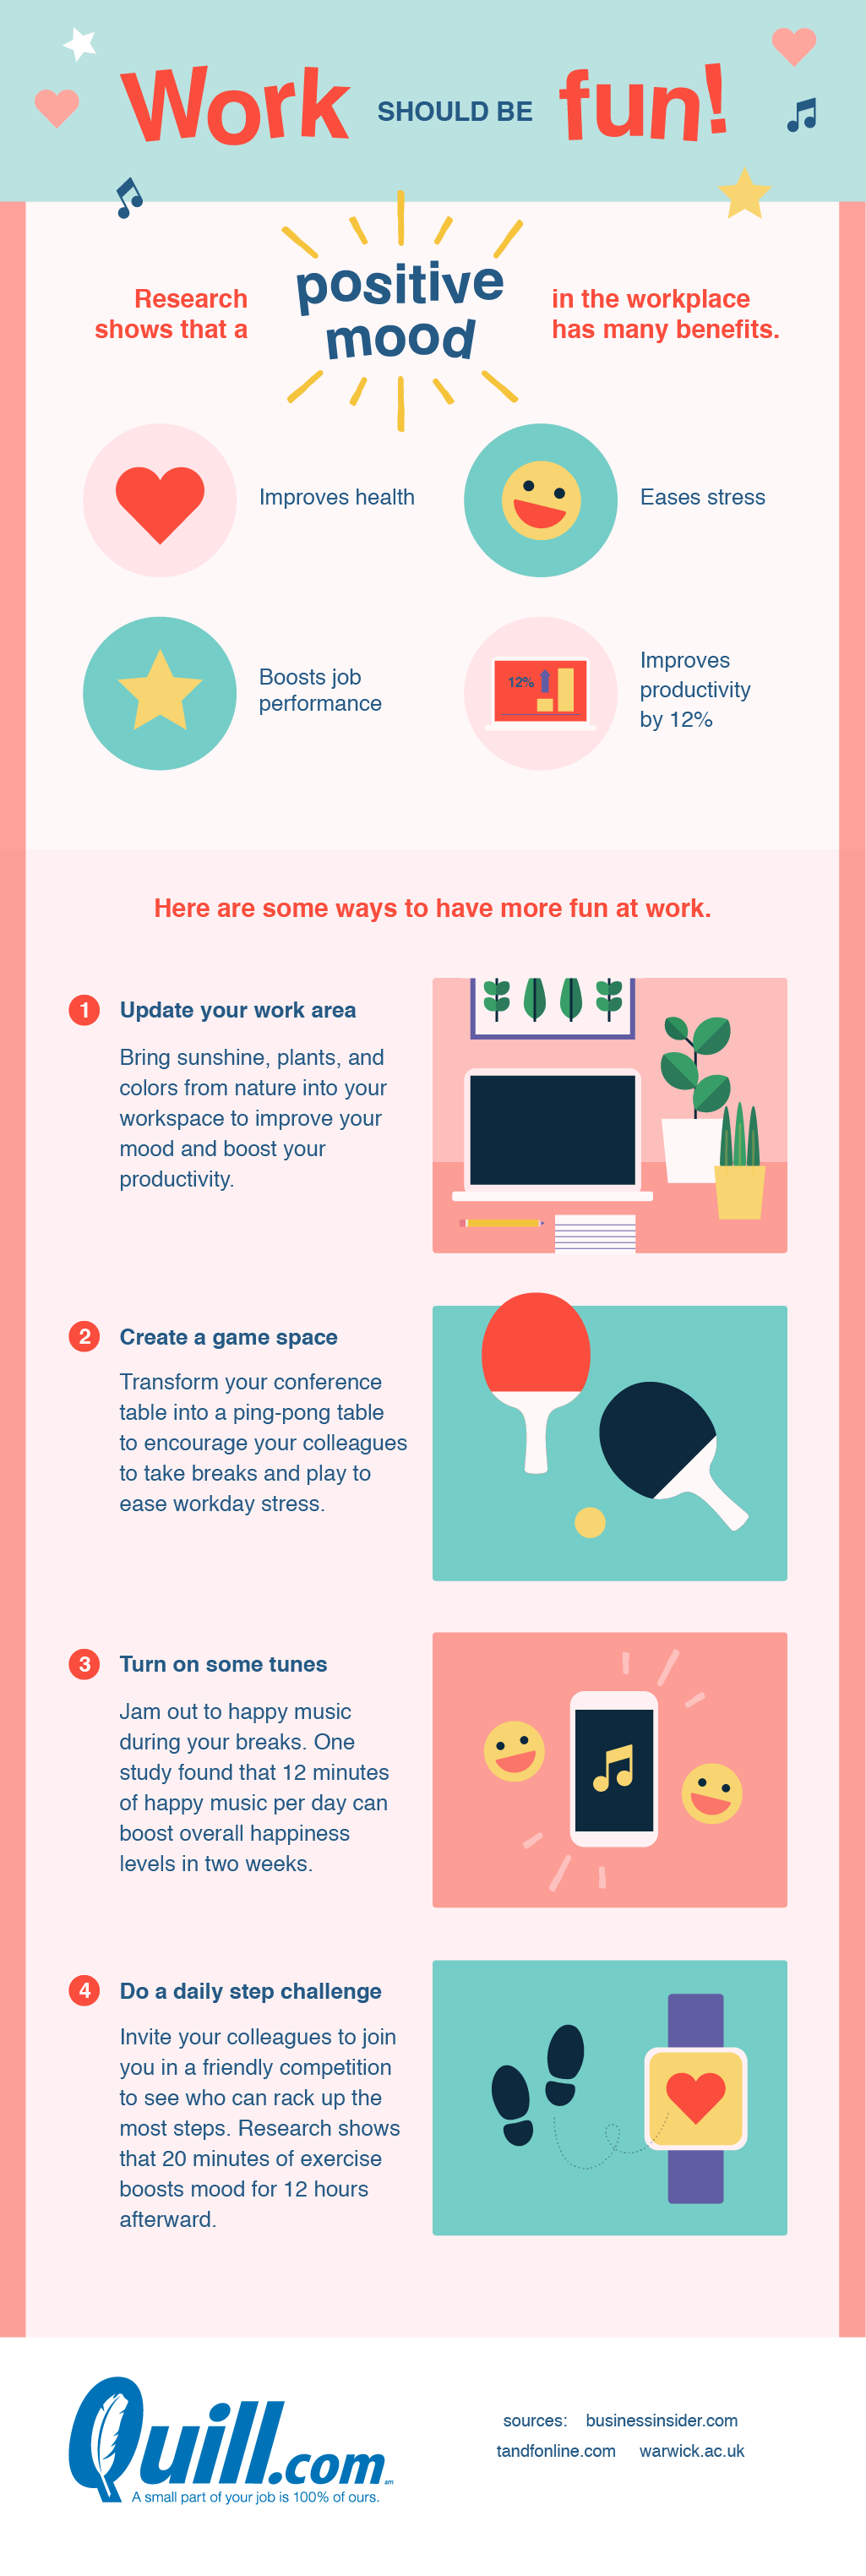 Enhance Work Productivity by as Much as 12%? Add Fun to the Workspace! - Infographic